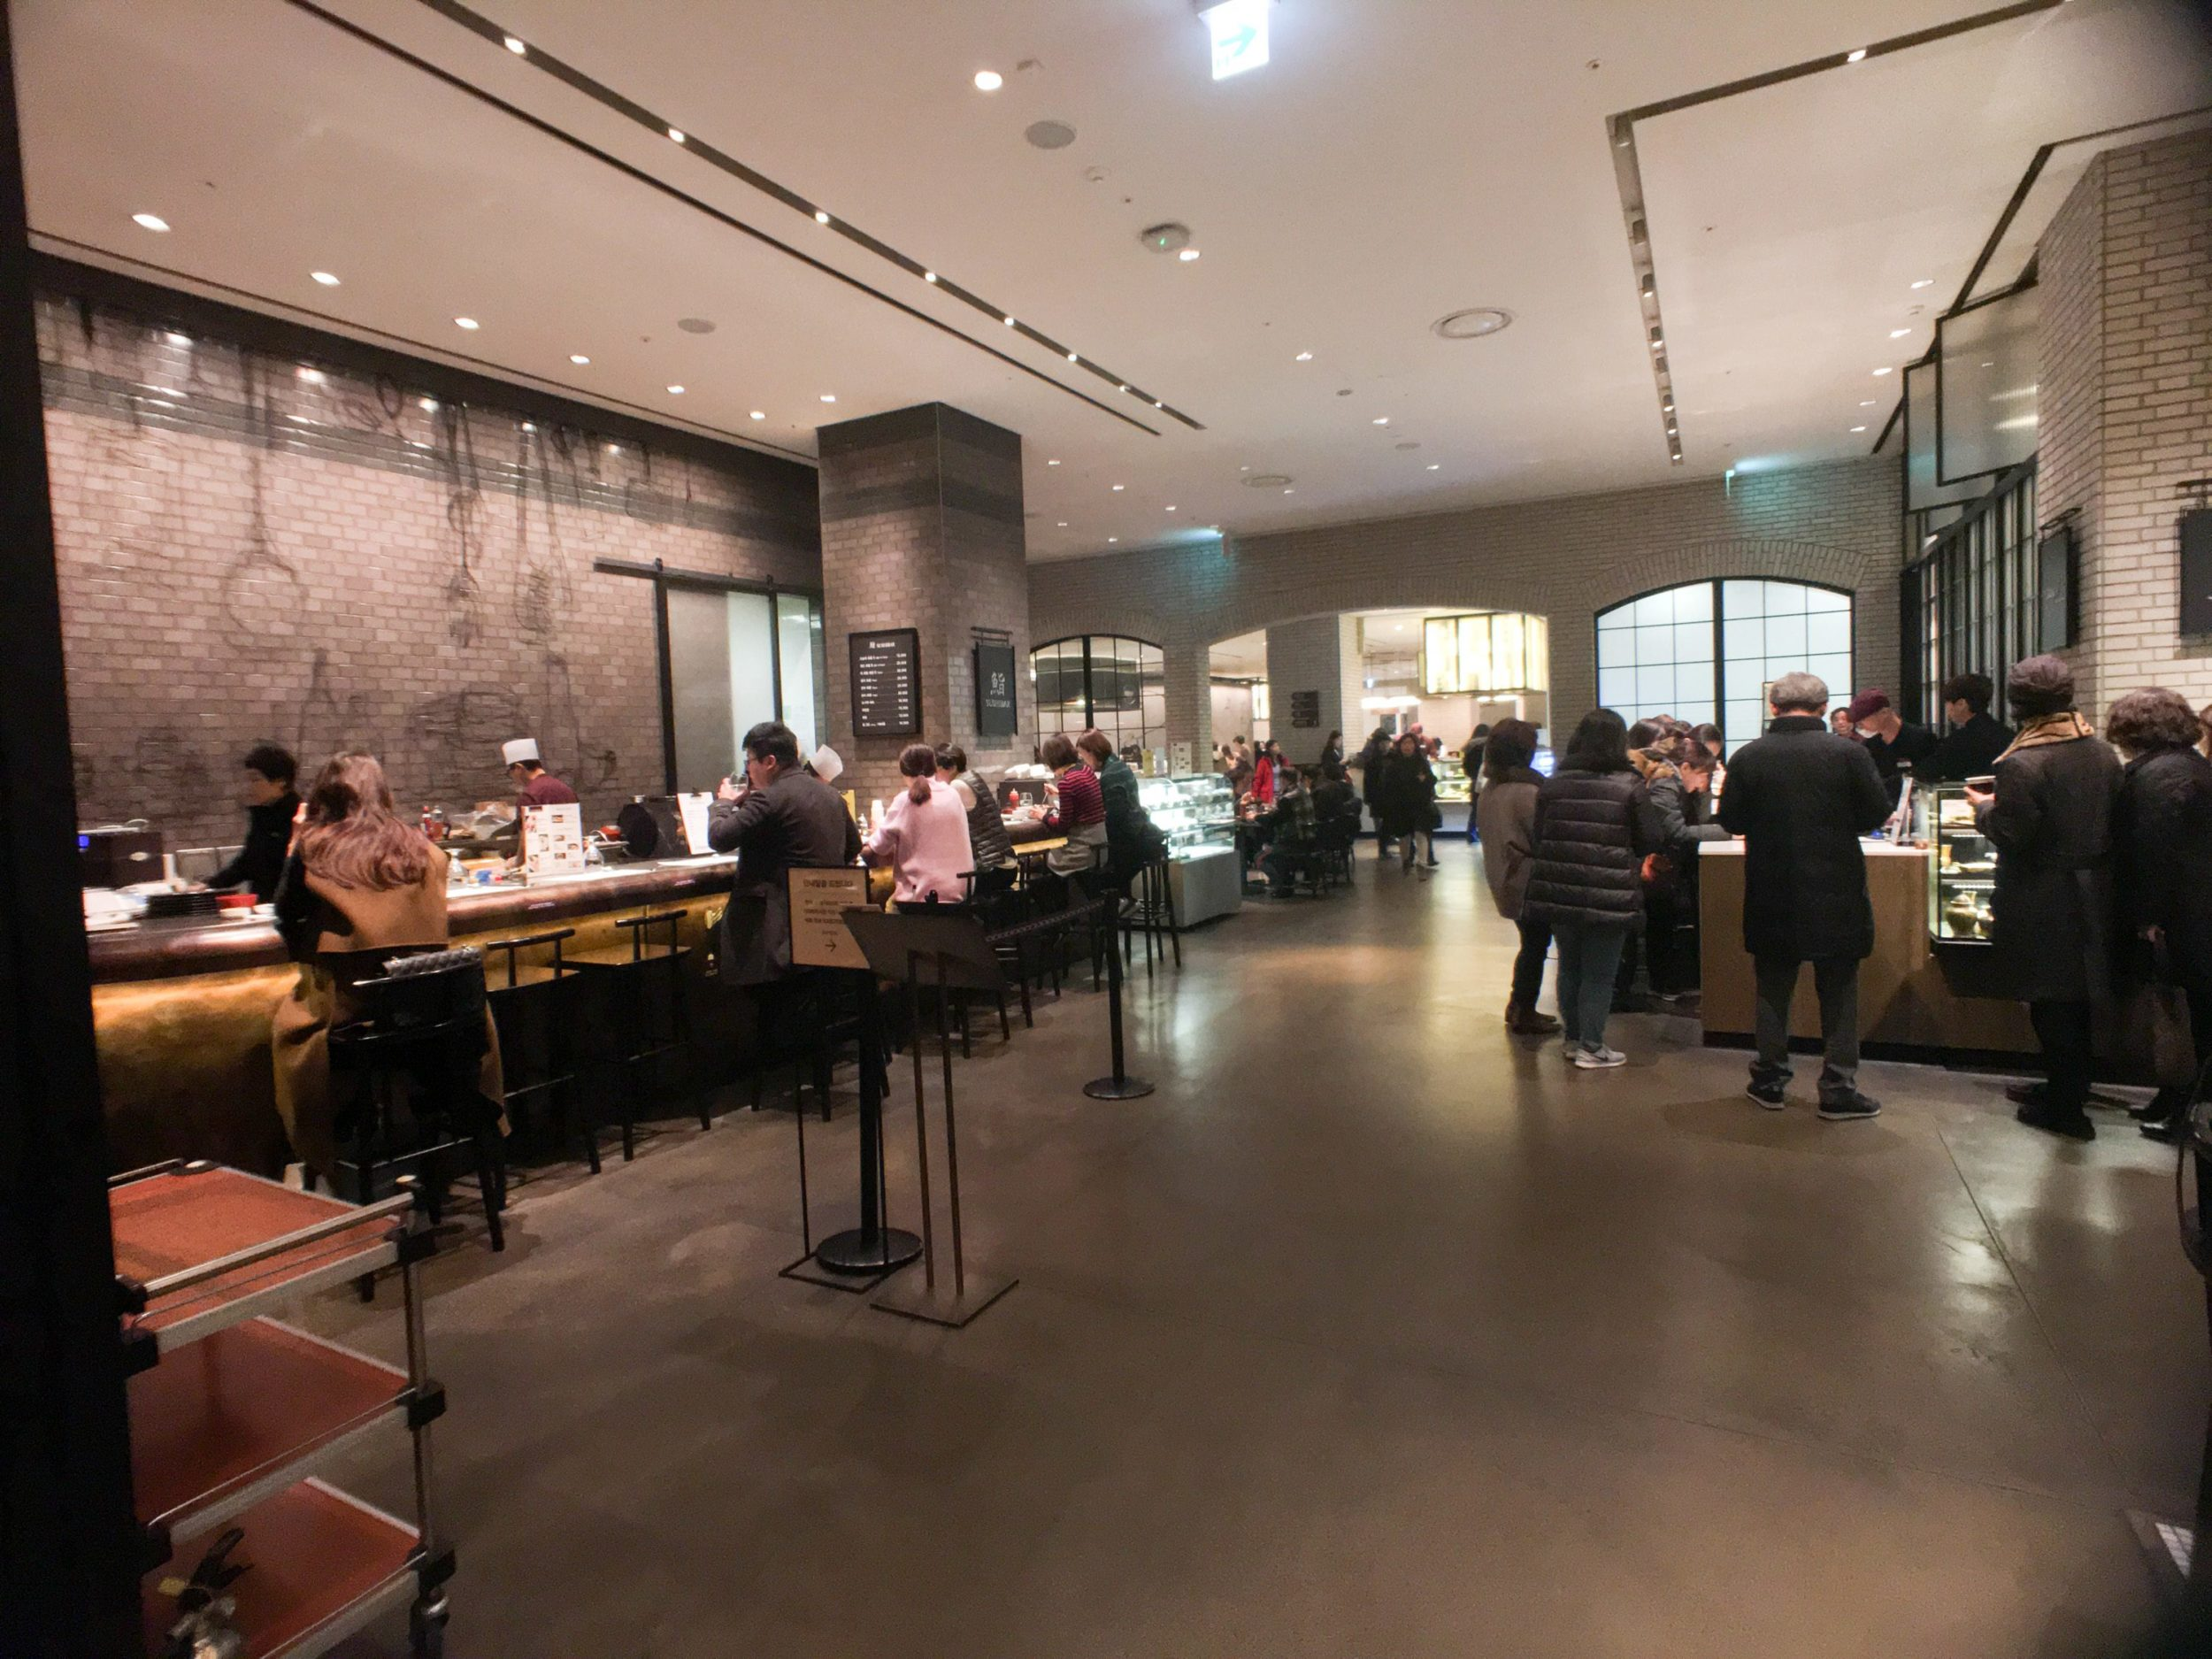 The food hall at Shinsegae department store in Seoul has lots of cuisine choices.